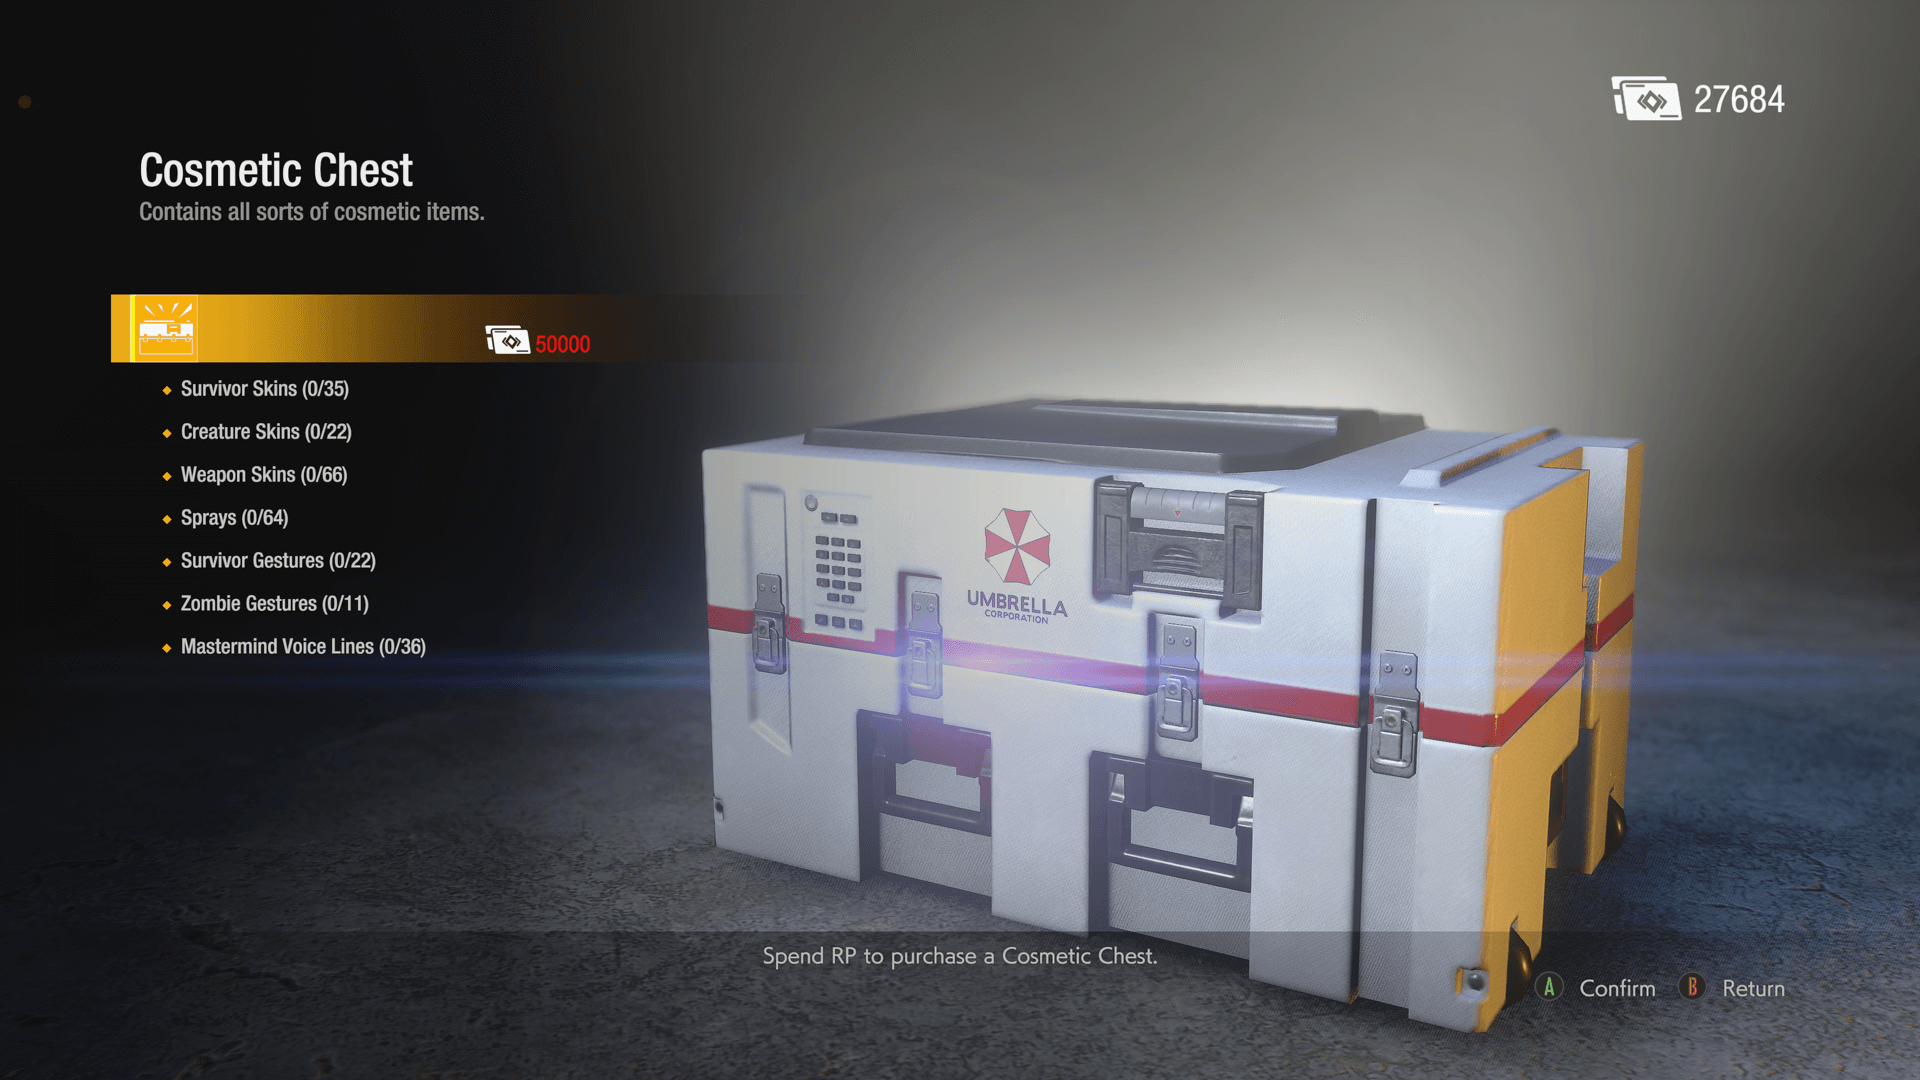 Resident Evil brings out Loot boxes and can this be free 2 play or pay 2 win